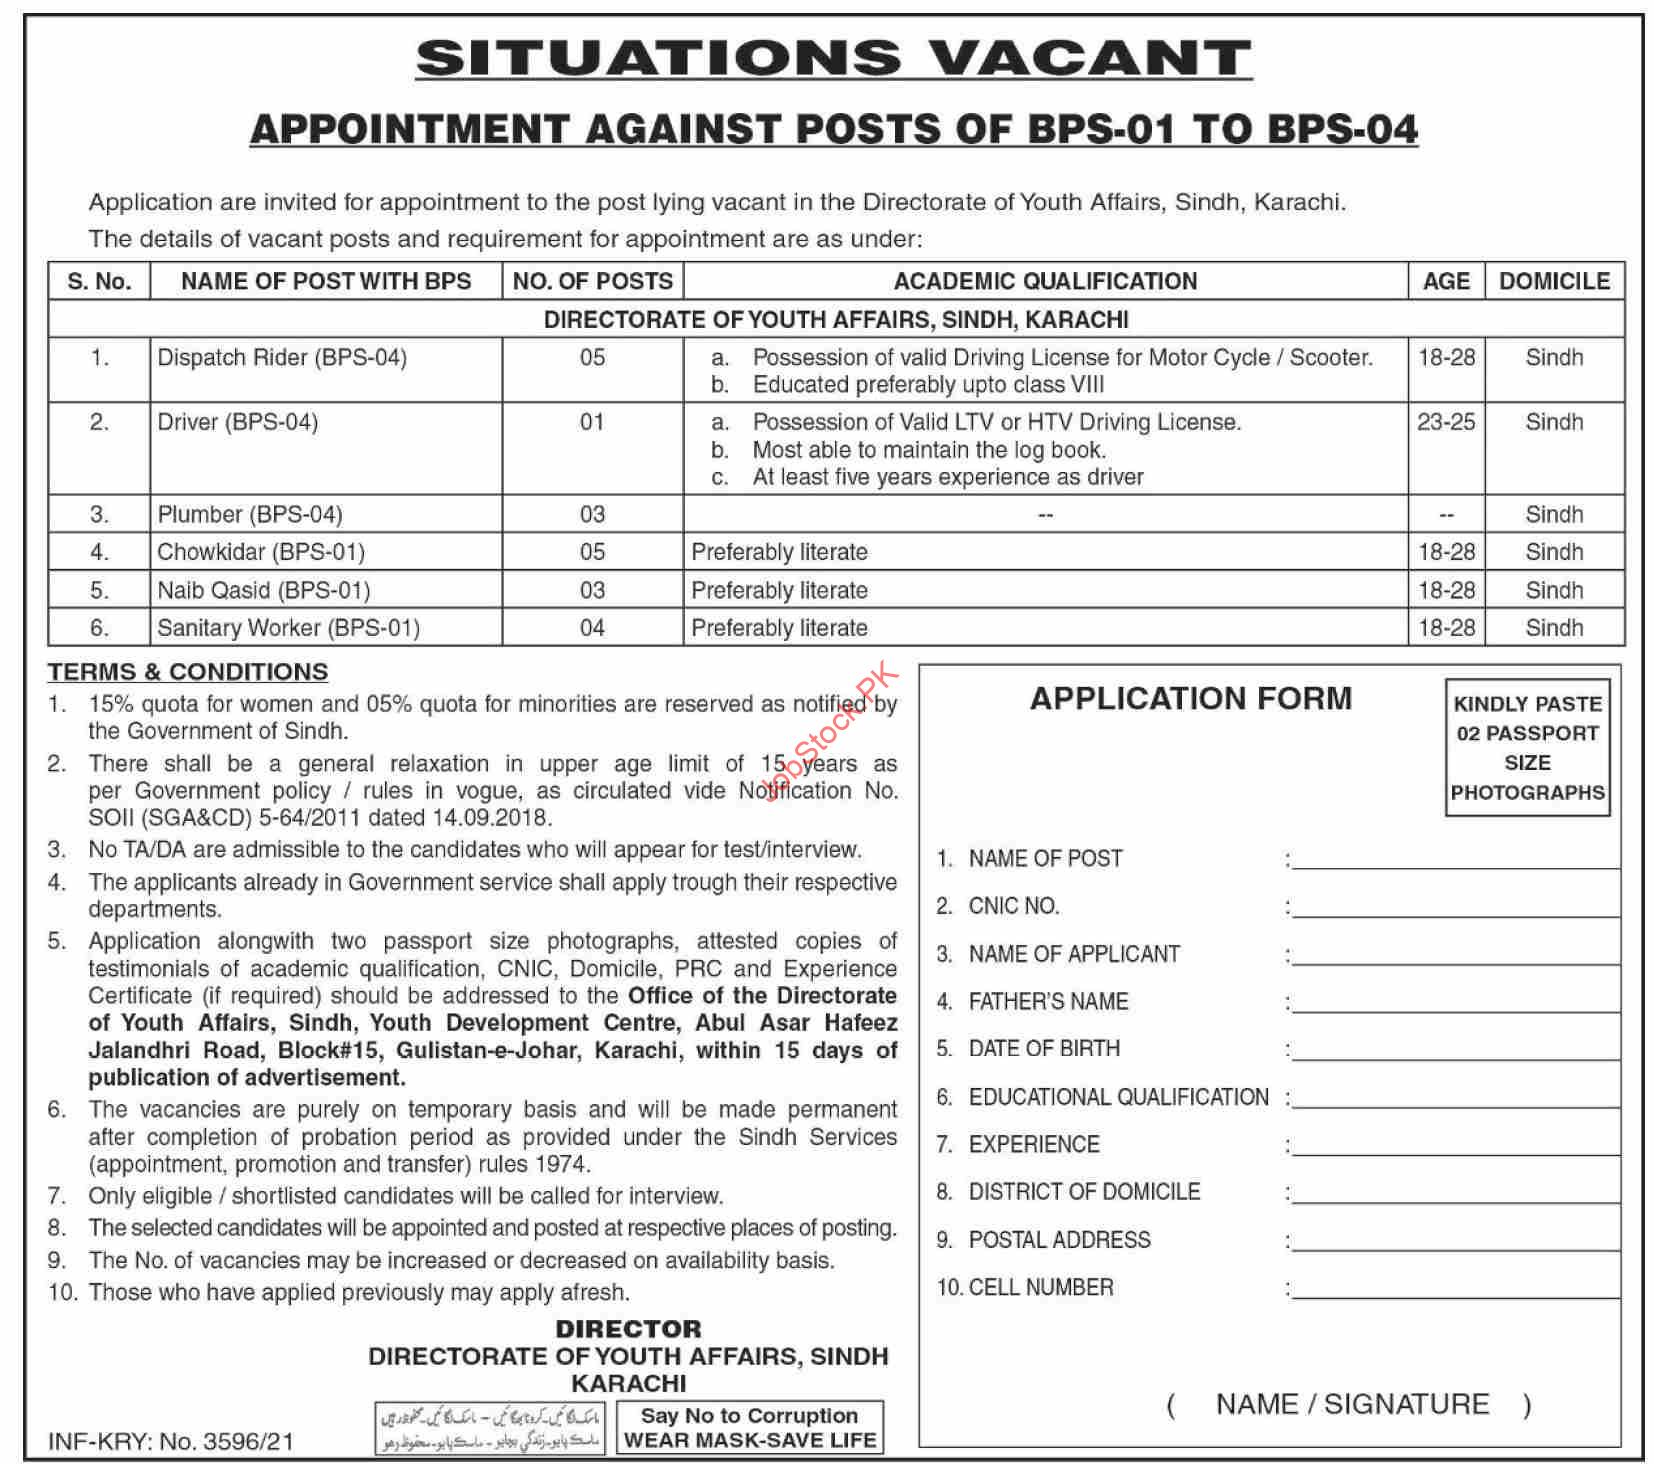 Directorate Of Youth Affairs Sindh Karachi 2021 Advertisement Government Jobs In Sindh For Intermediate